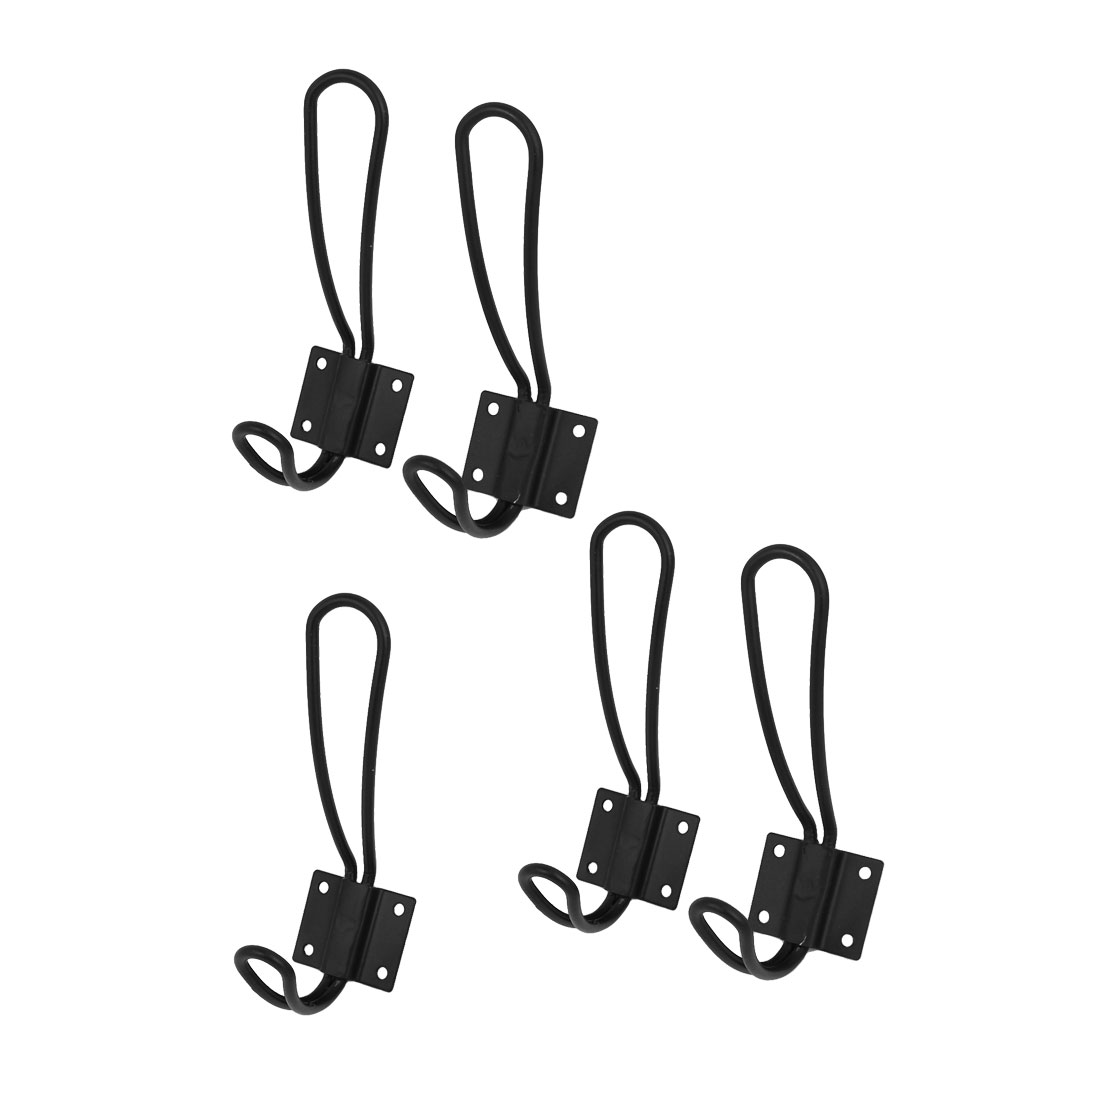 Hat Coat Towels Display Wall Mounted Hanger Hook Bracket Black 5pcs